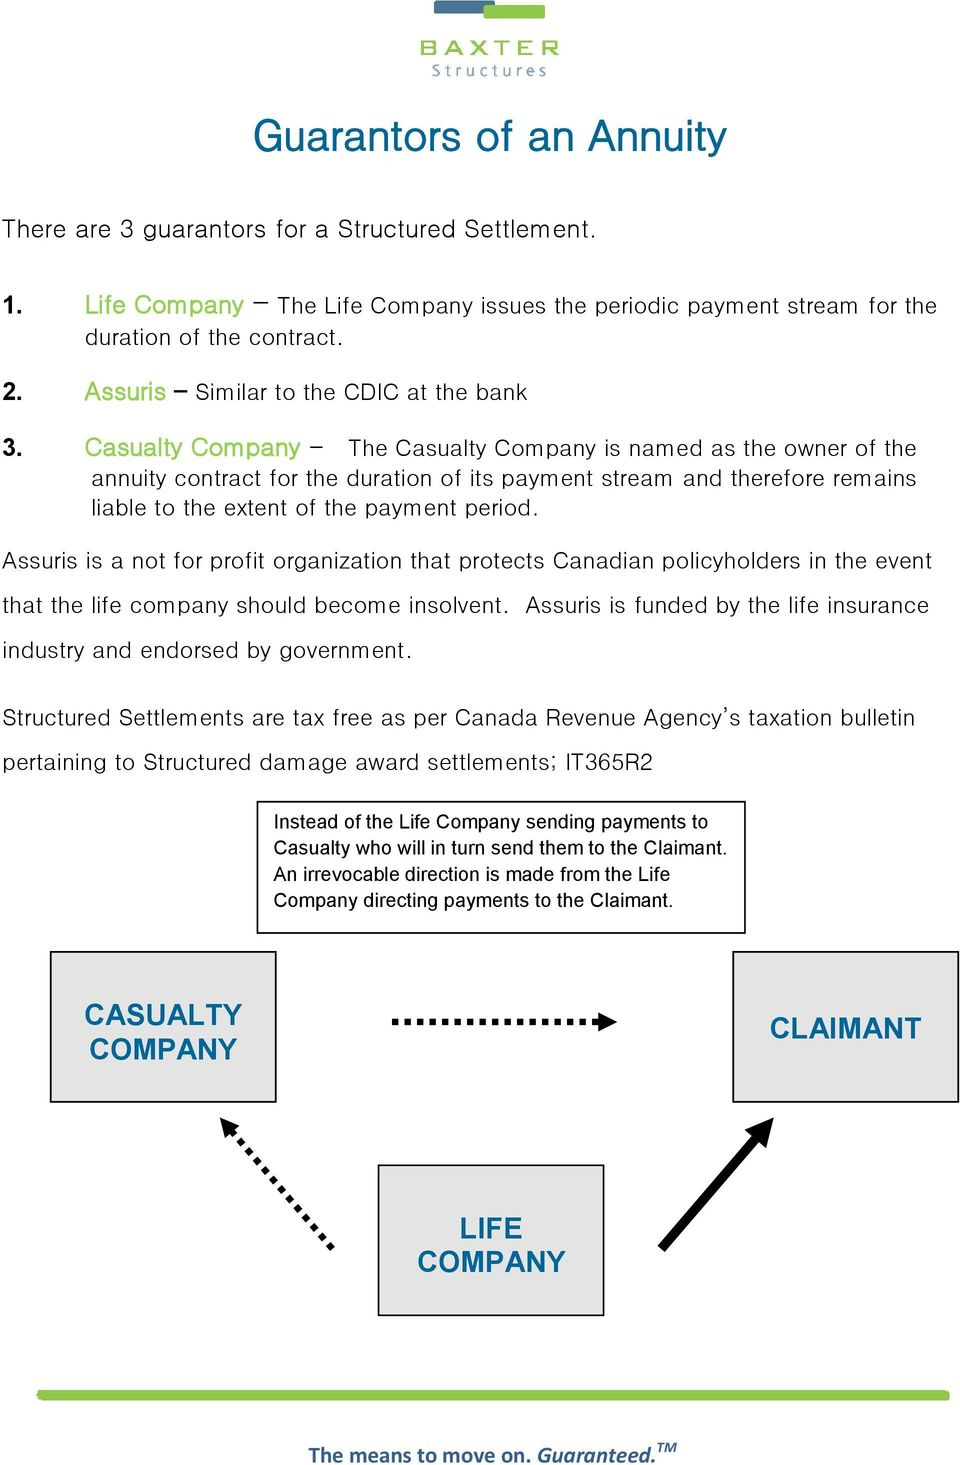 Casualty Company - The Casualty Company is named as the owner of the annuity contract for the duration of its payment stream and therefore remains liable to the extent of the payment period.